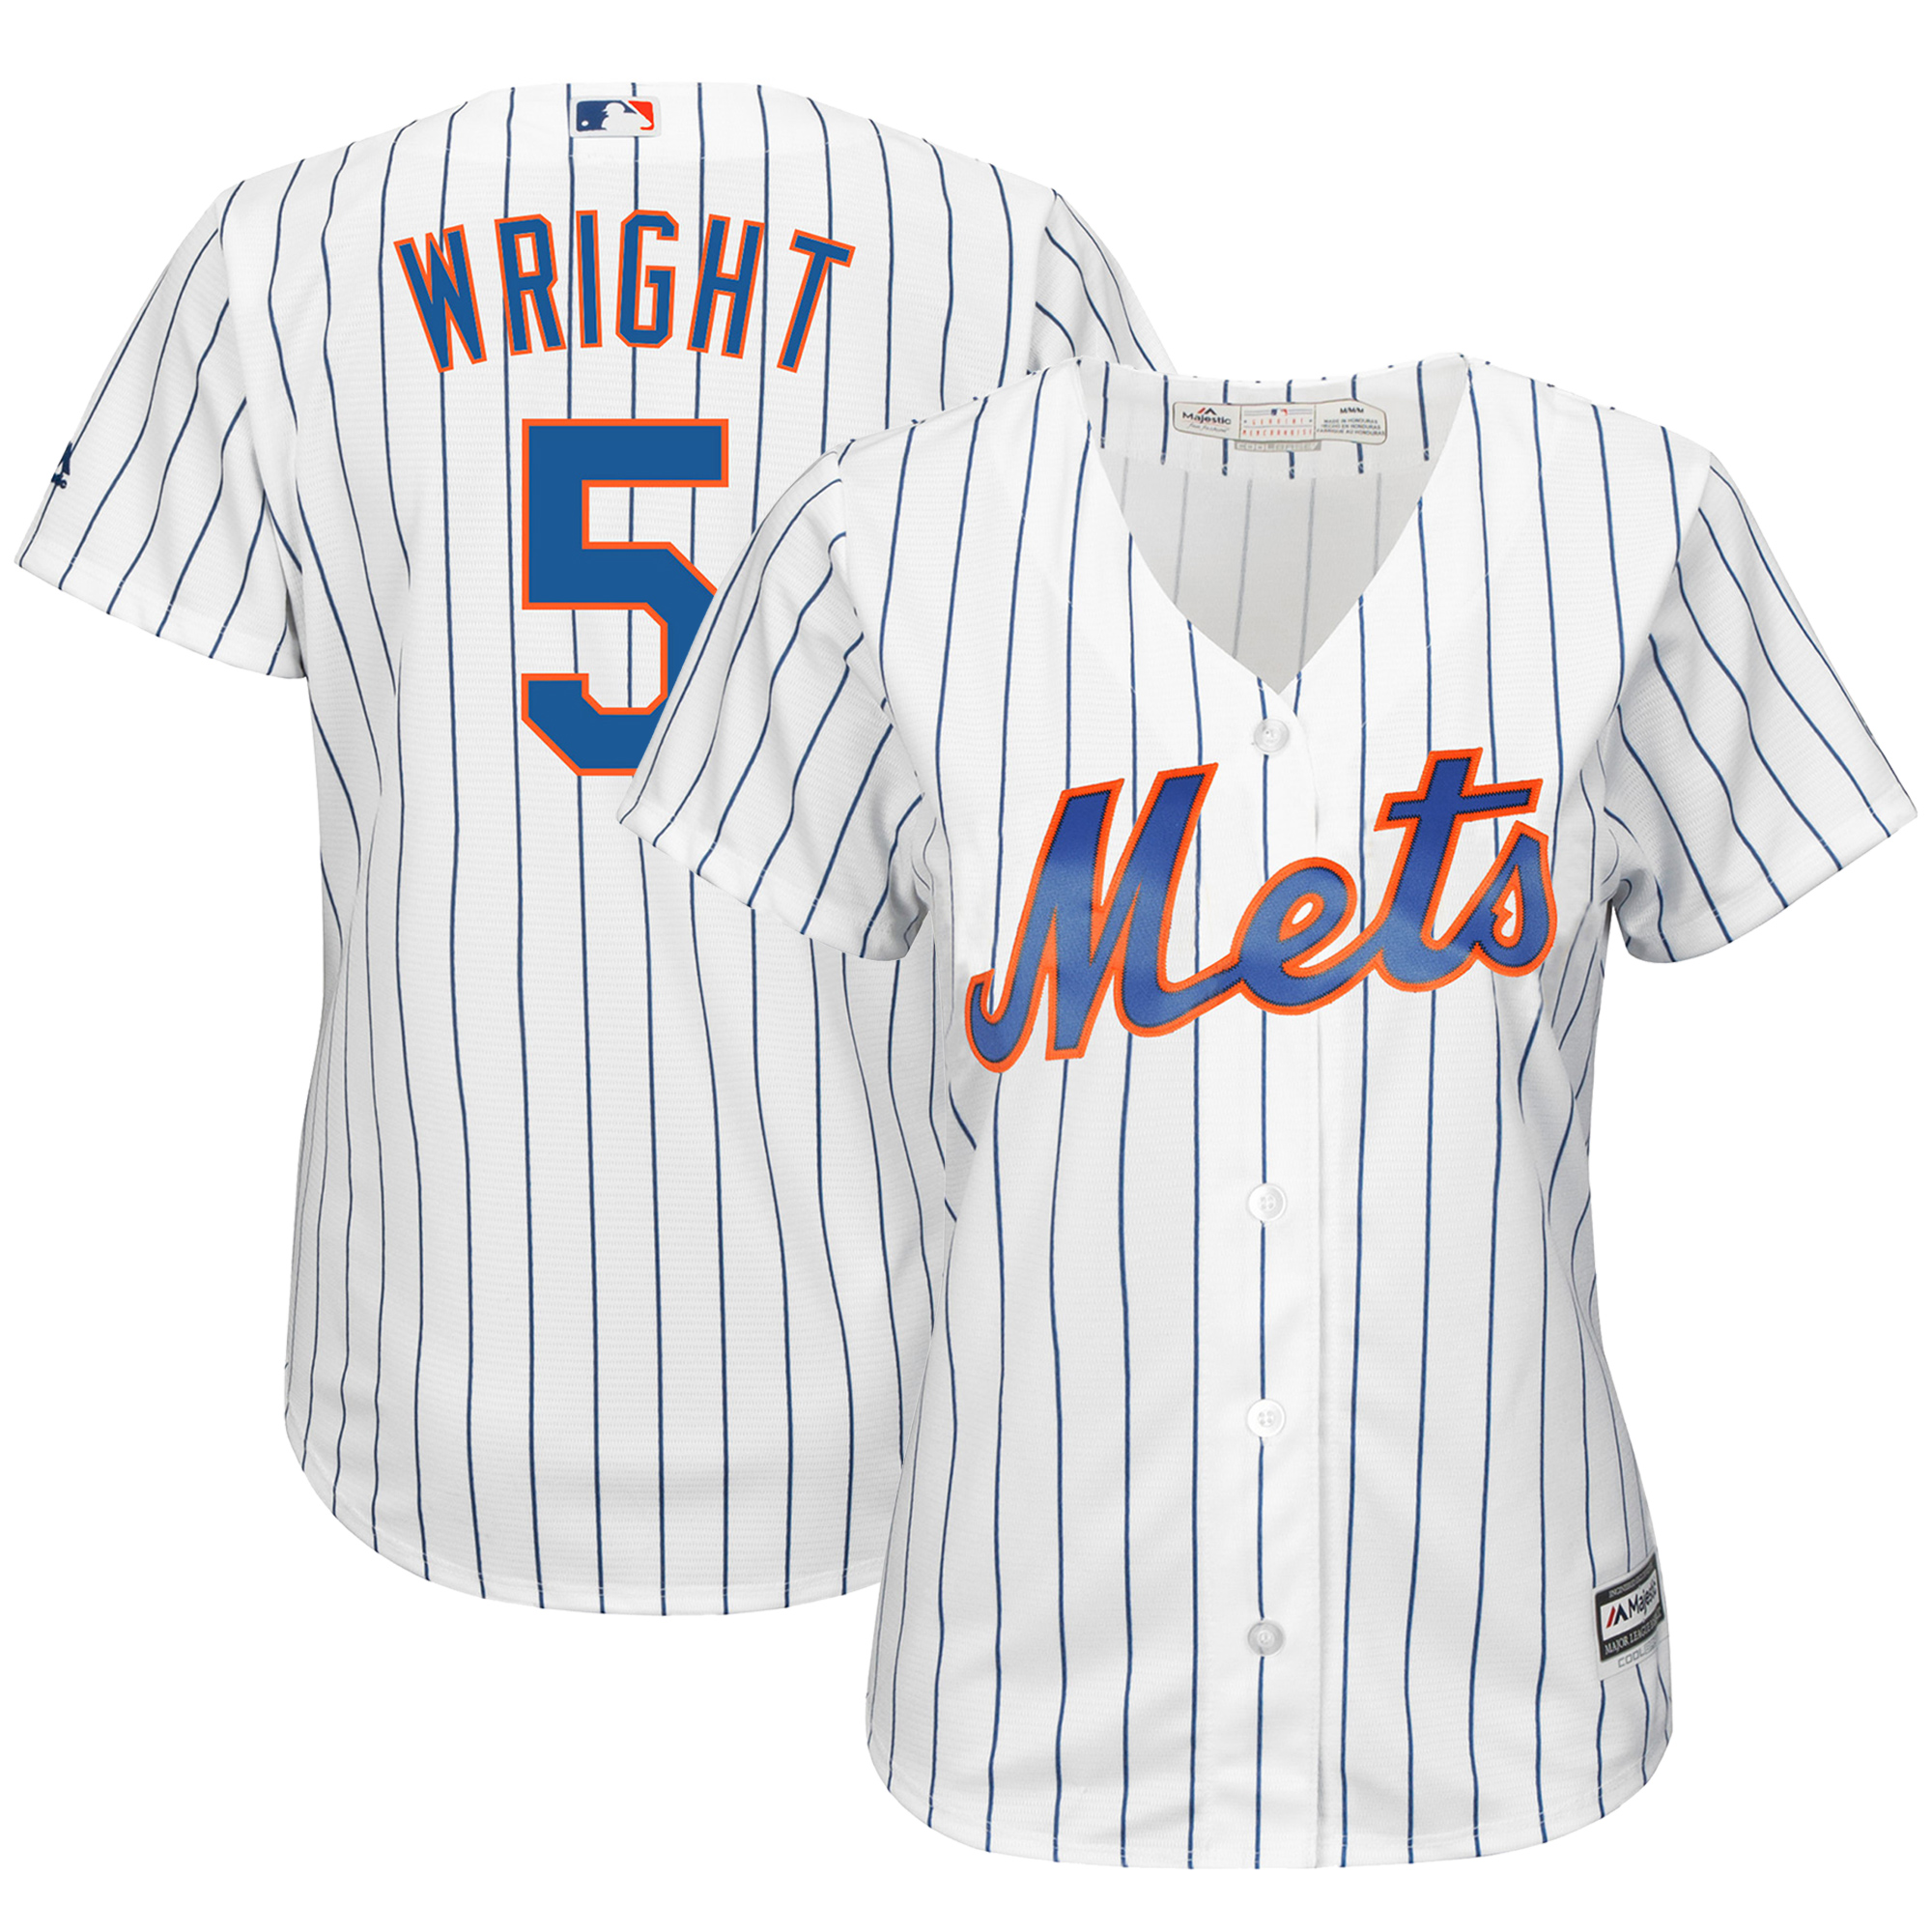 finest selection da733 1a4a1 David Wright New York Mets Majestic Women's Cool Base Jersey ...